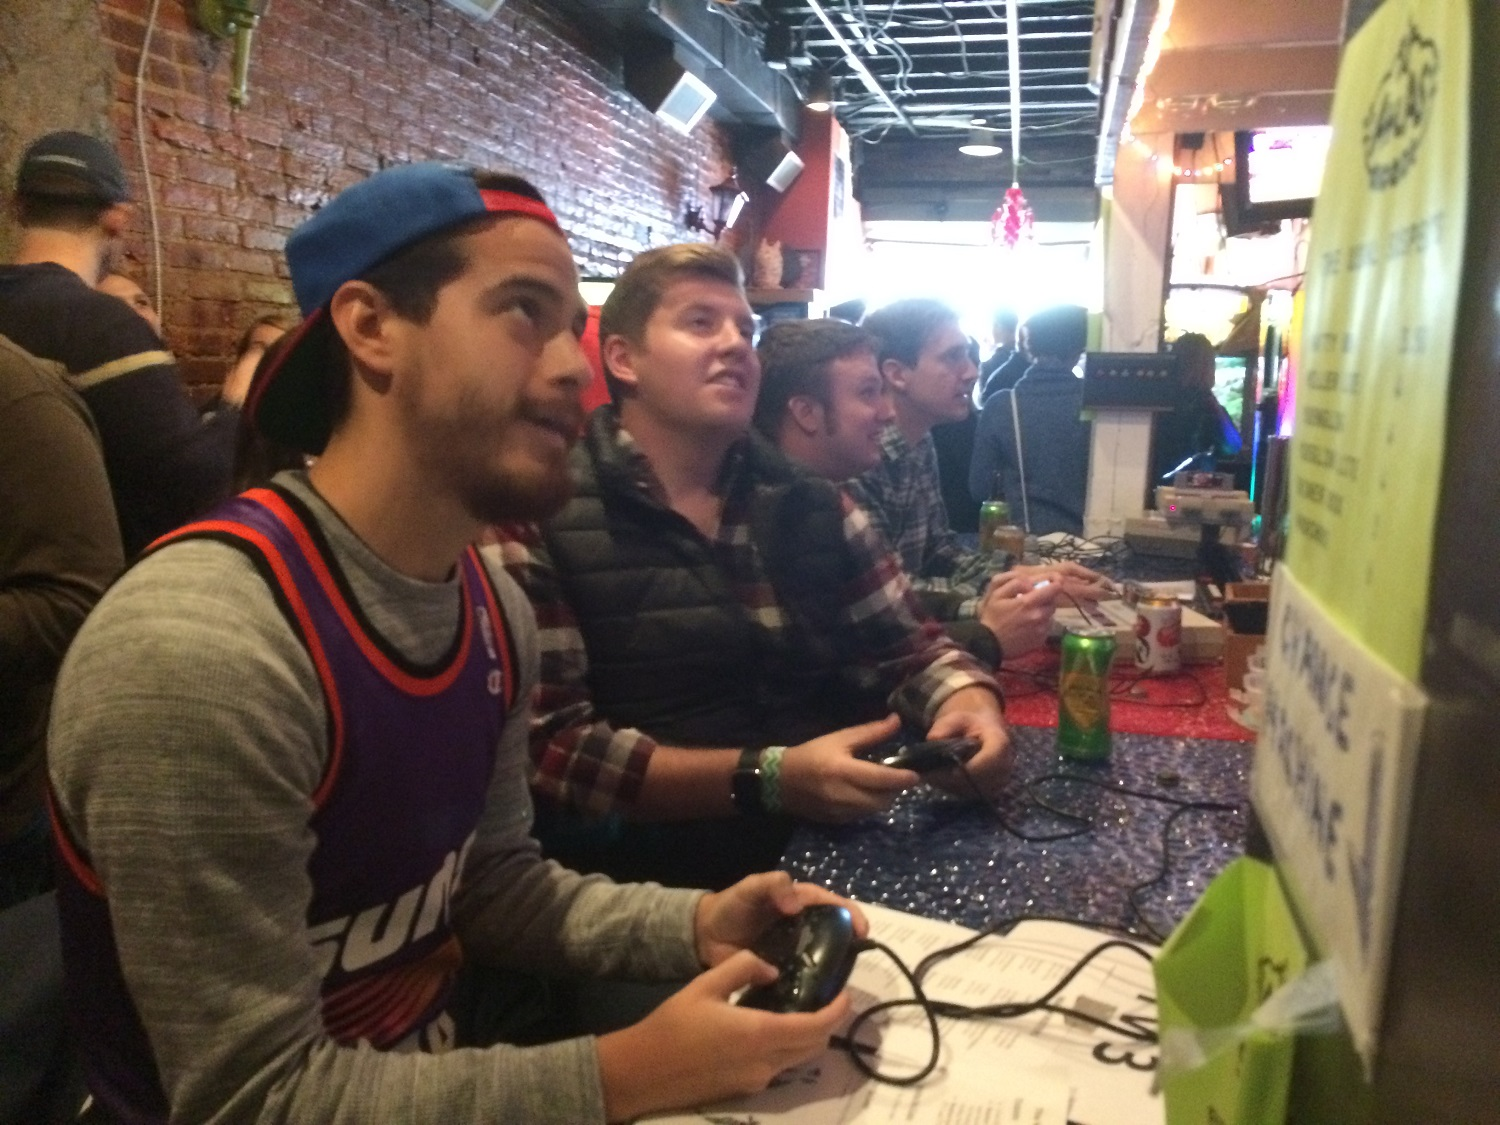 Bringing friends together with NBA Jam